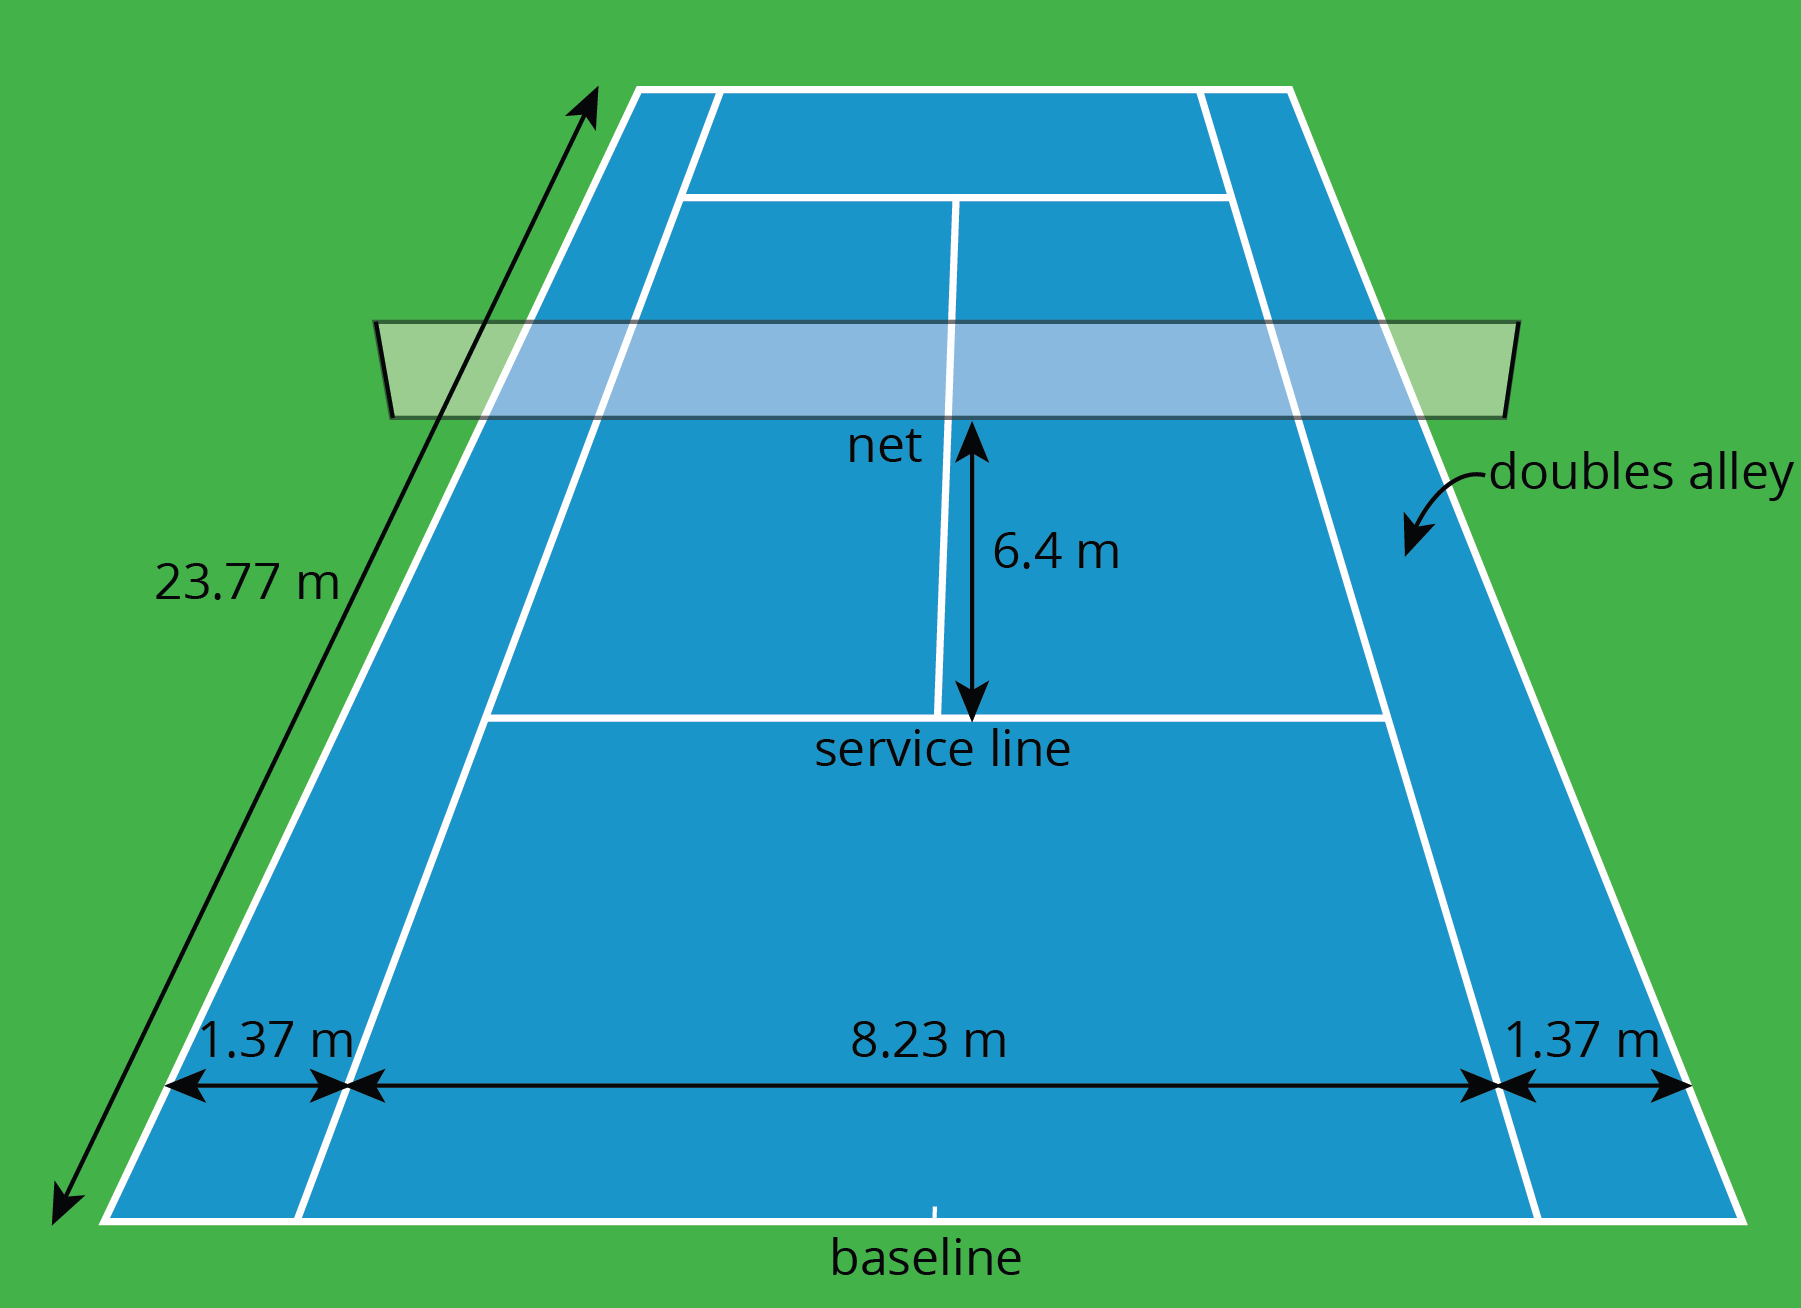 Labeled Diagram Of A Tennis Court - Introduction To Electrical ...